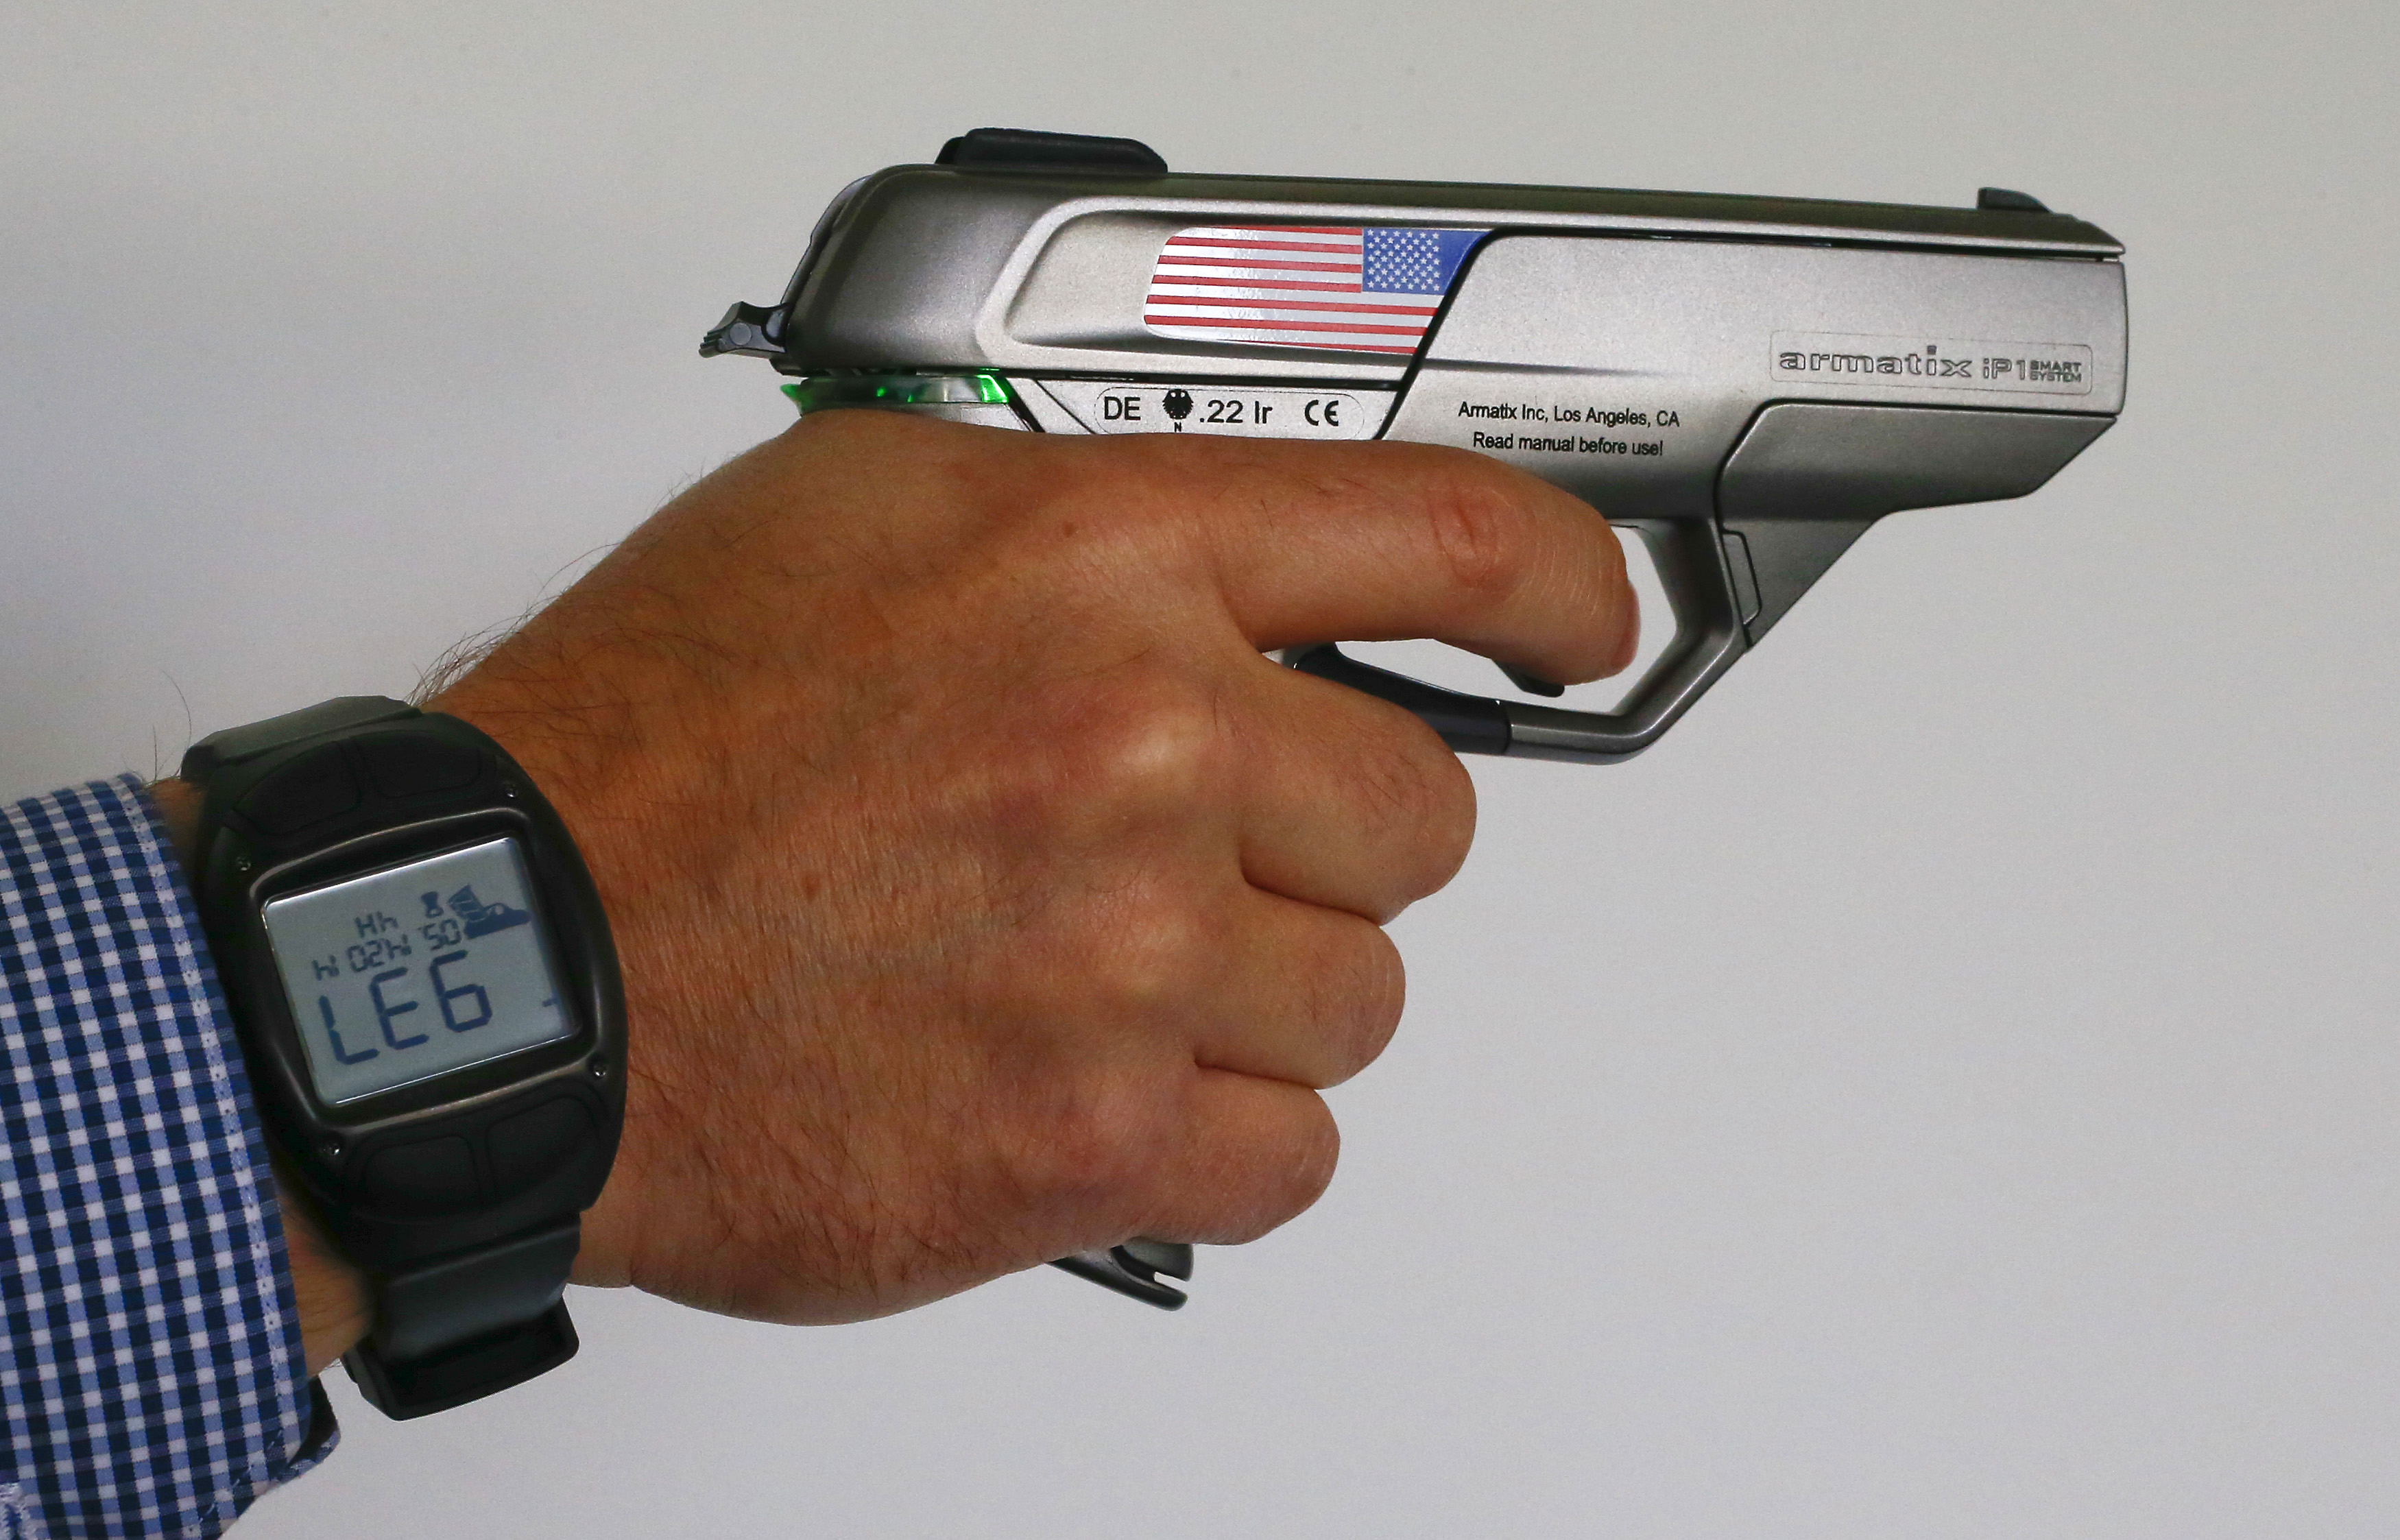 """An Armatix employee holds a smart gun by the company at the Armatix headquarters in Munich May 14, 2014. The gun is implanted with an electronic chip that allows it to be fired only if the shooter is wearing a watch that communicates with it through a radio signal. If the gun is moved more than 10 inches (25 cm) from the watch, it will not fire. A Maryland gun shop owner has dropped his plan to be the first in the United States to sell the so-called """"smart gun"""" after a backlash that included death threats. REUTERS/Michael Dalder"""